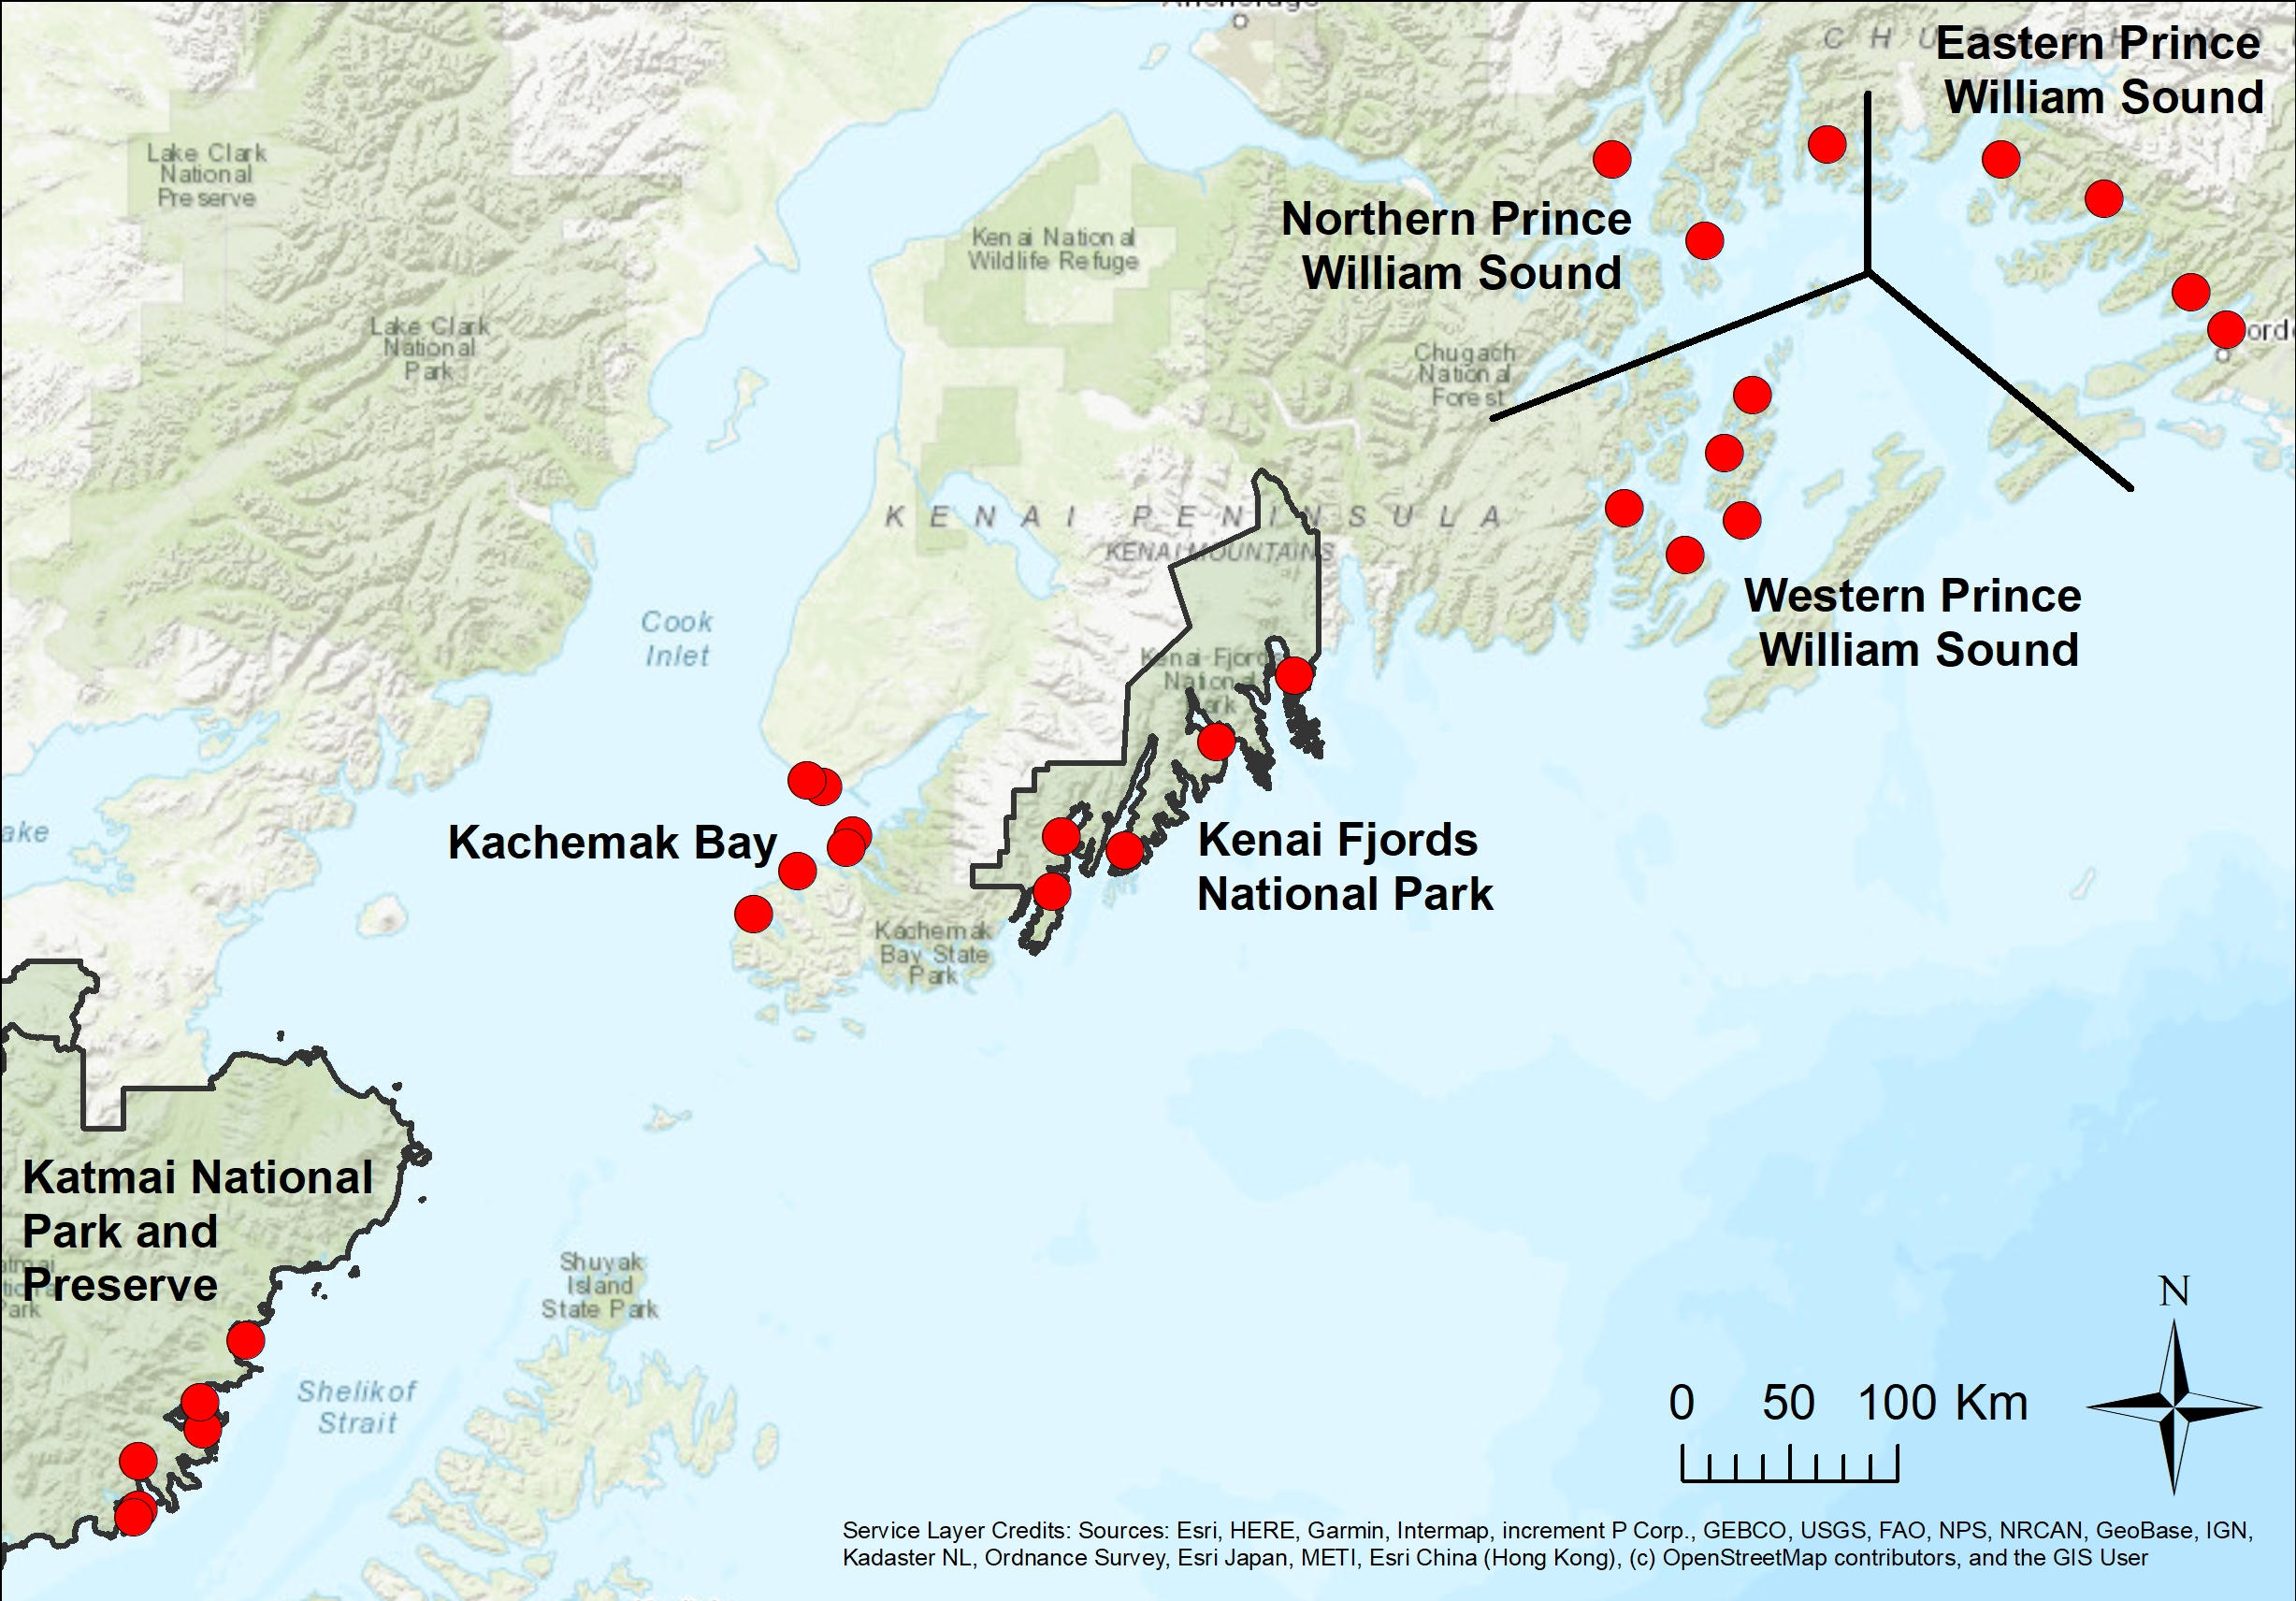 Map of SWAN long-term marine contaminants monitoring stations in Katmai National Park and Preserve and Kenai Fjords National Park, and sites in Prince William Sound and Kachemak Bay sampled in partnership with Gulf Watch Alaska. Red dots represent bay mussel tissue analysis collection sites.